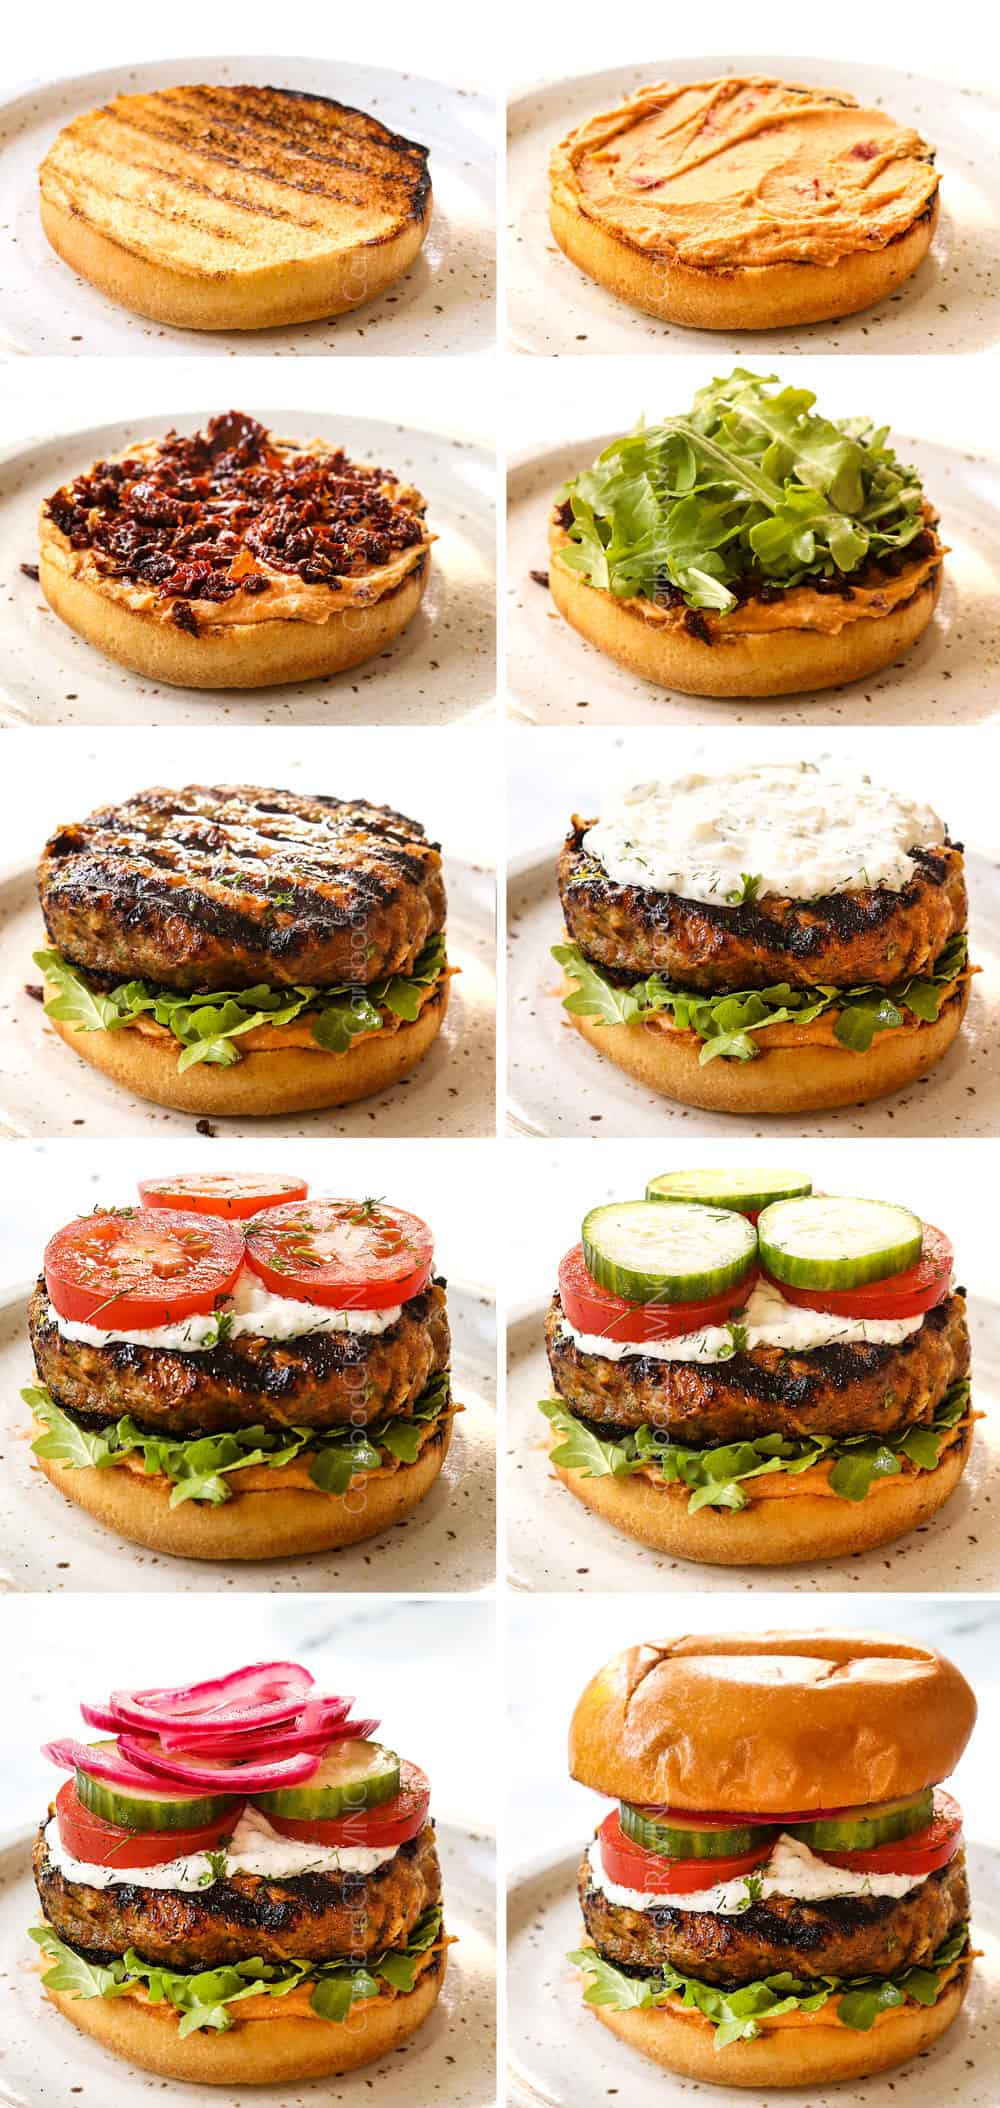 a collage showing how to make biftekia (Greek Burgers) by layering with hummus, arugula, sun-dried tomatoes, lamb burger, tzatziki, tomatoes, cucumber and onions